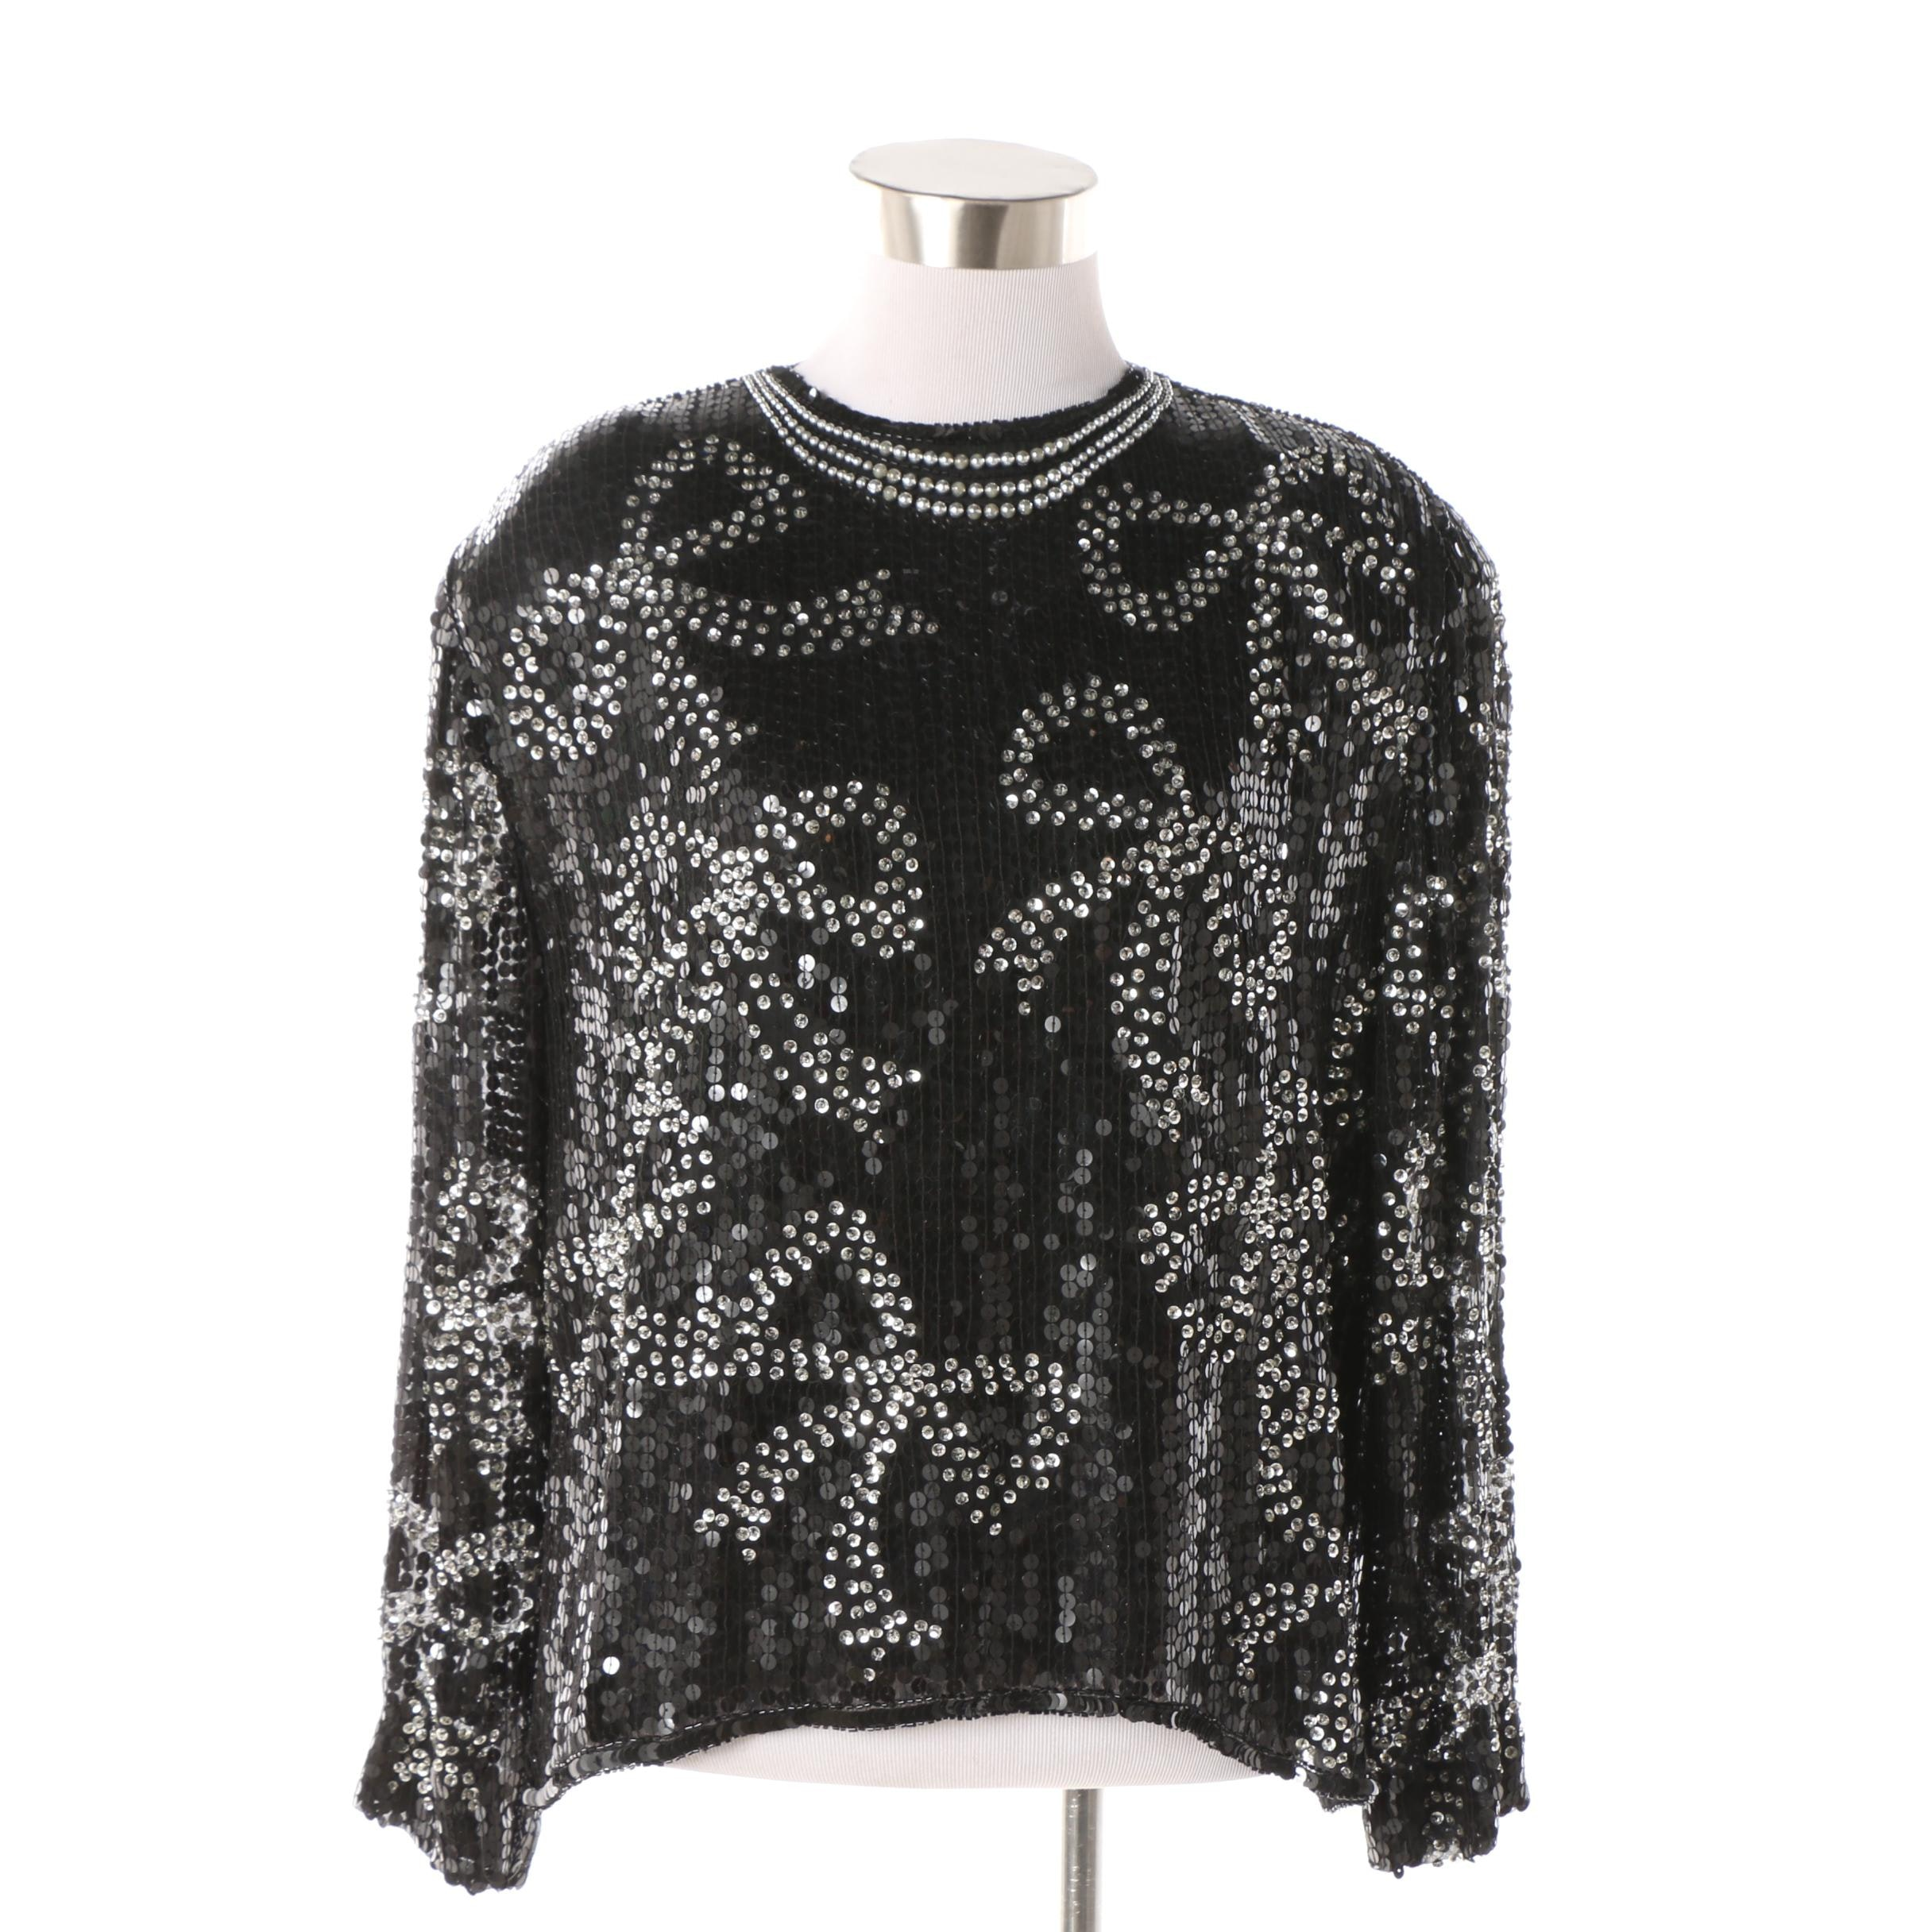 J.K.L. Laing Sequined and Beaded Black Silk Blouse in Bow Motif